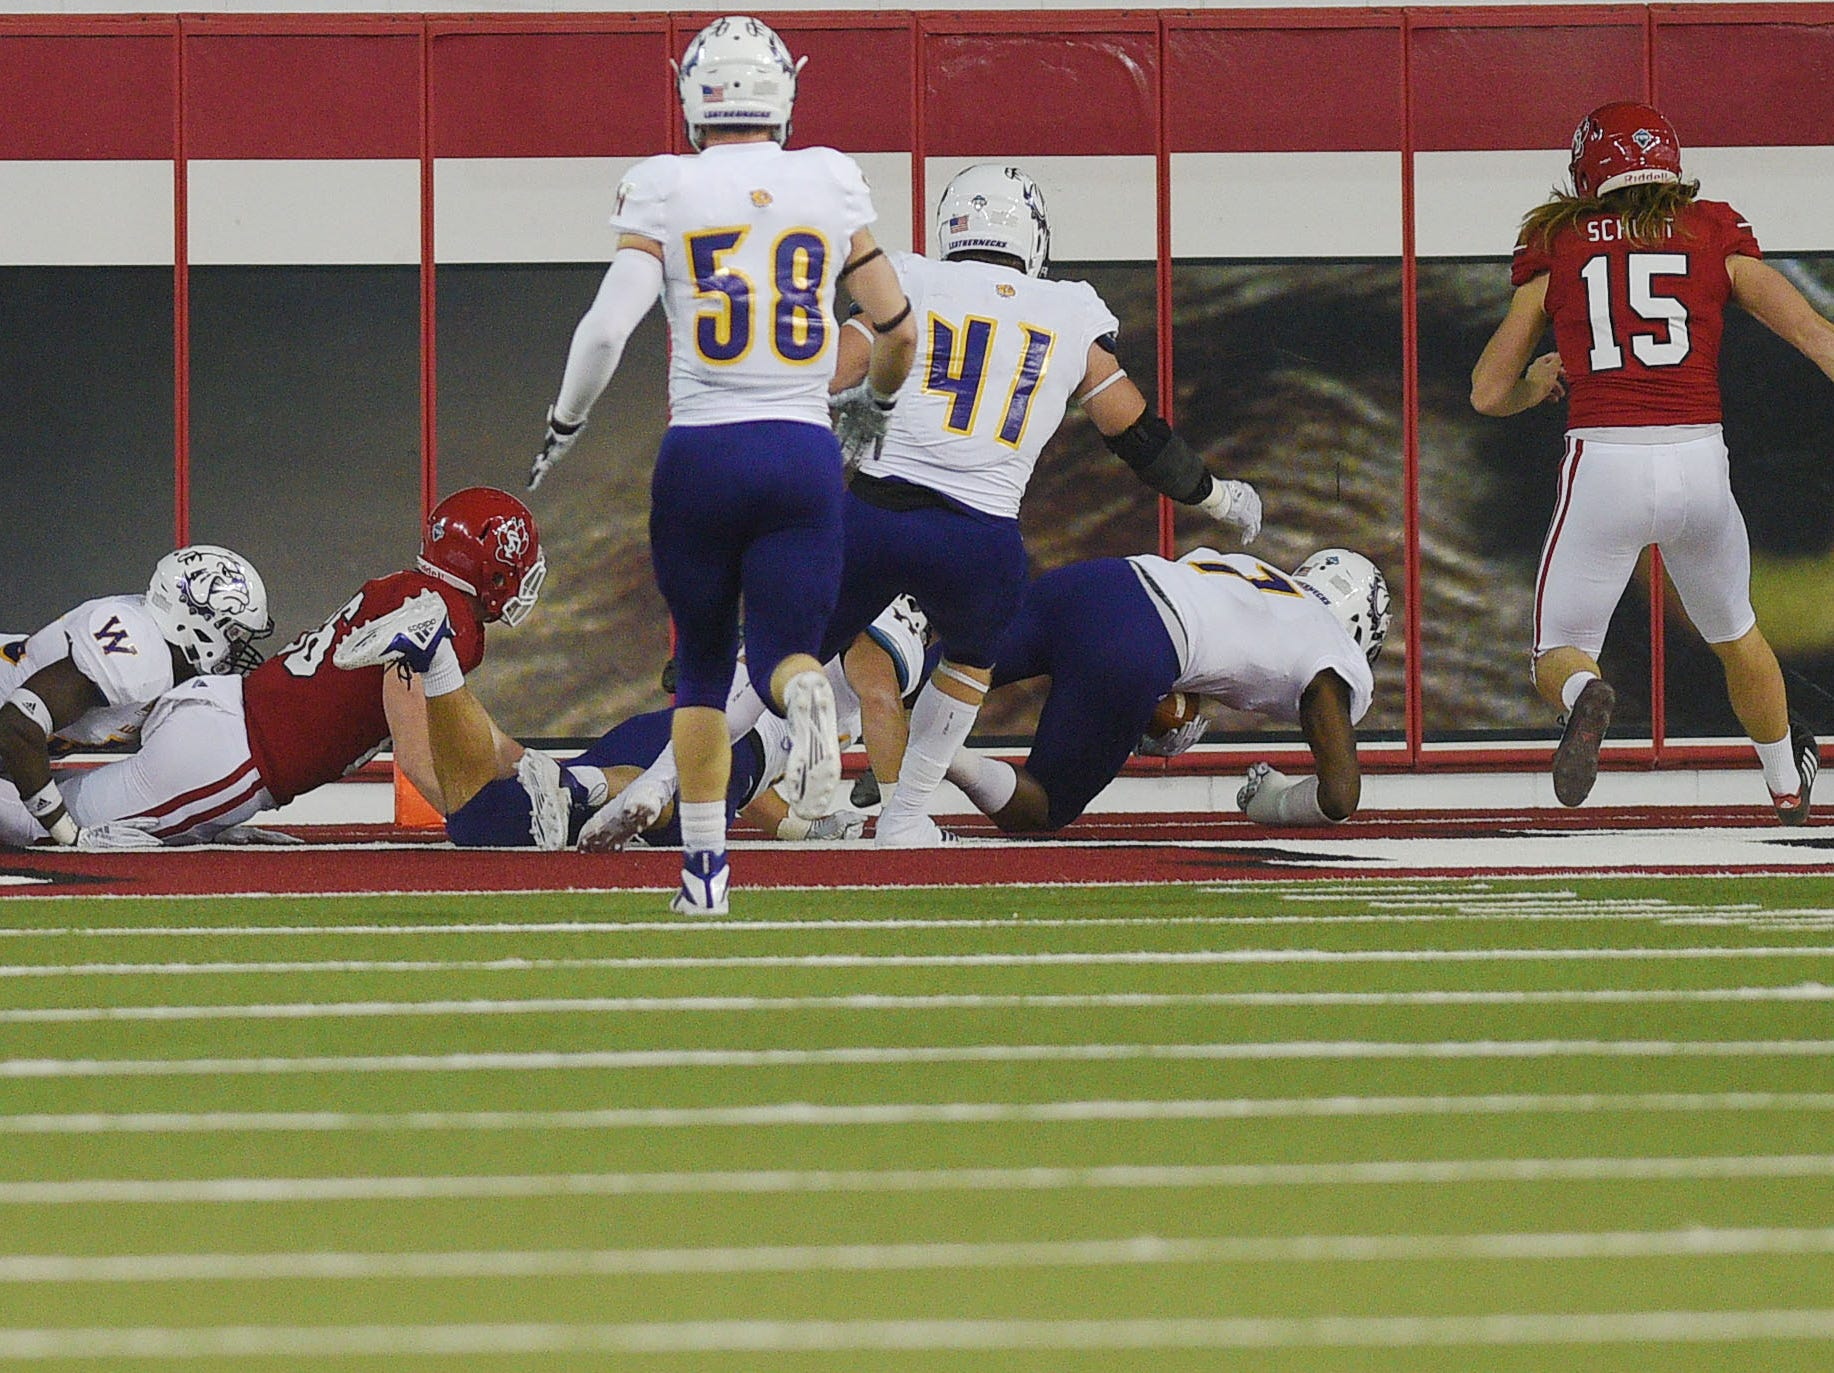 Western Illinois blocks a punt and recovers it for a touchdown during the game against USD Saturday, Nov. 10, at the DakotaDome in Vermillion.